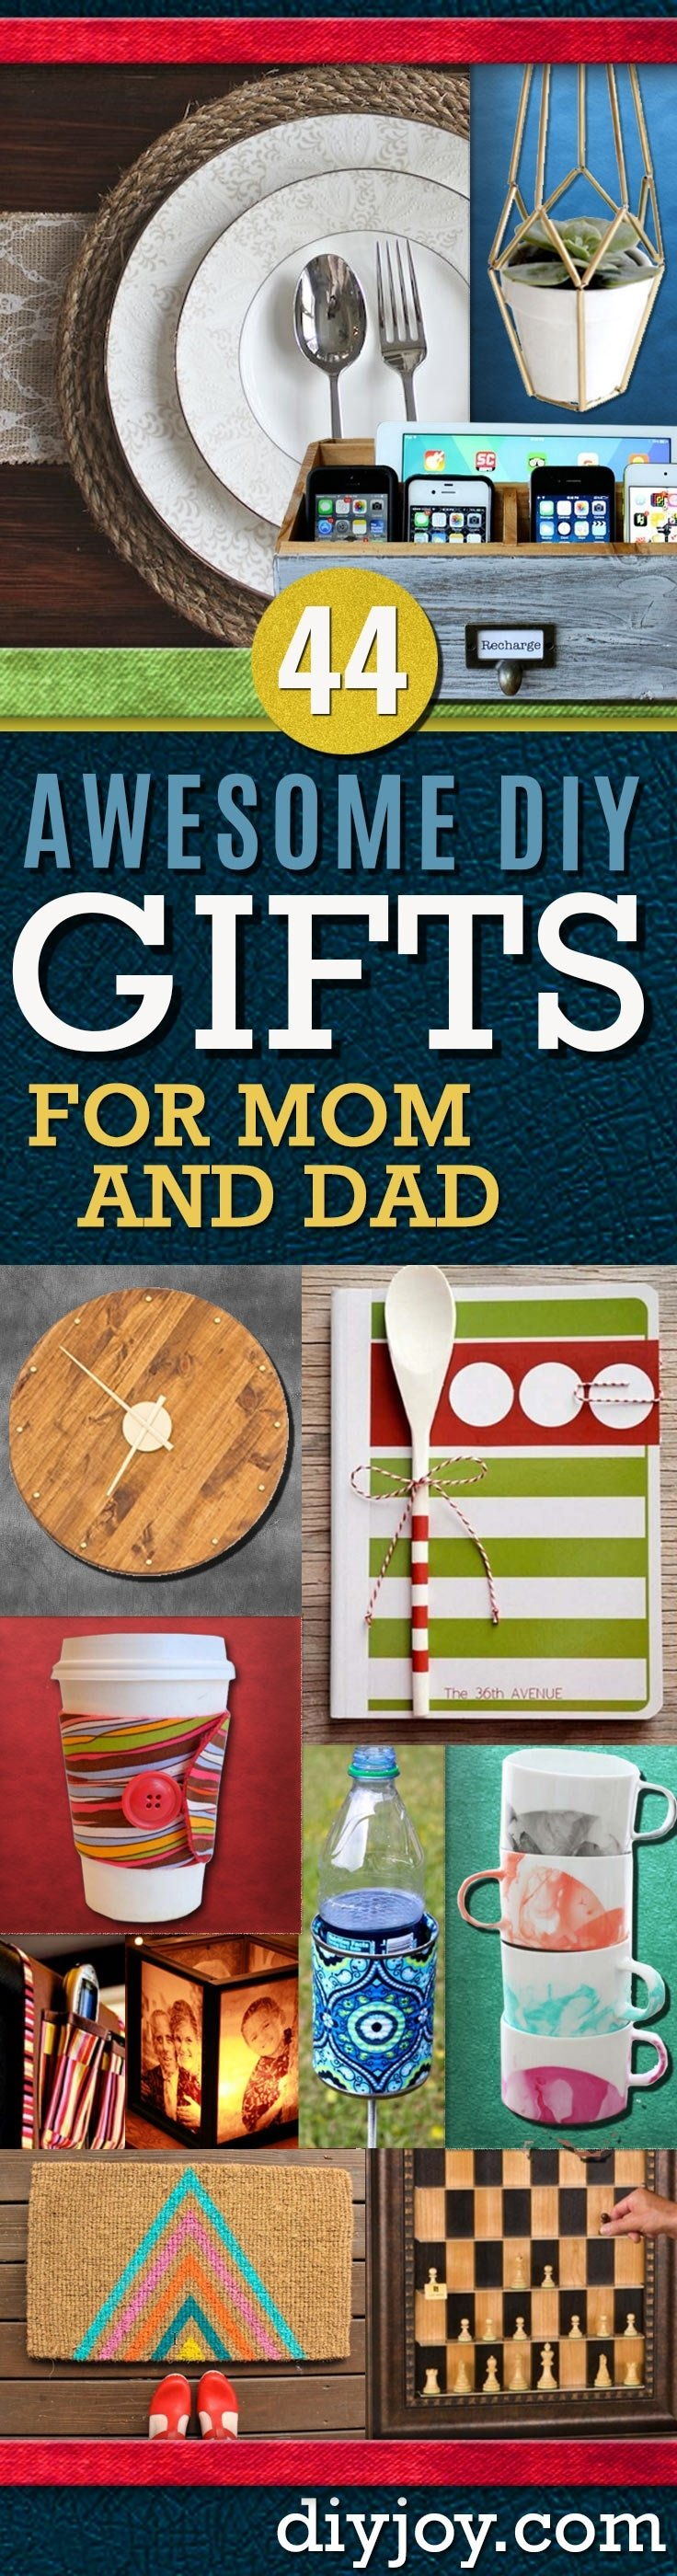 10 Stunning Homemade Christmas Gift Ideas For Dad awesome diy gift ideas mom and dad will love 1 2020